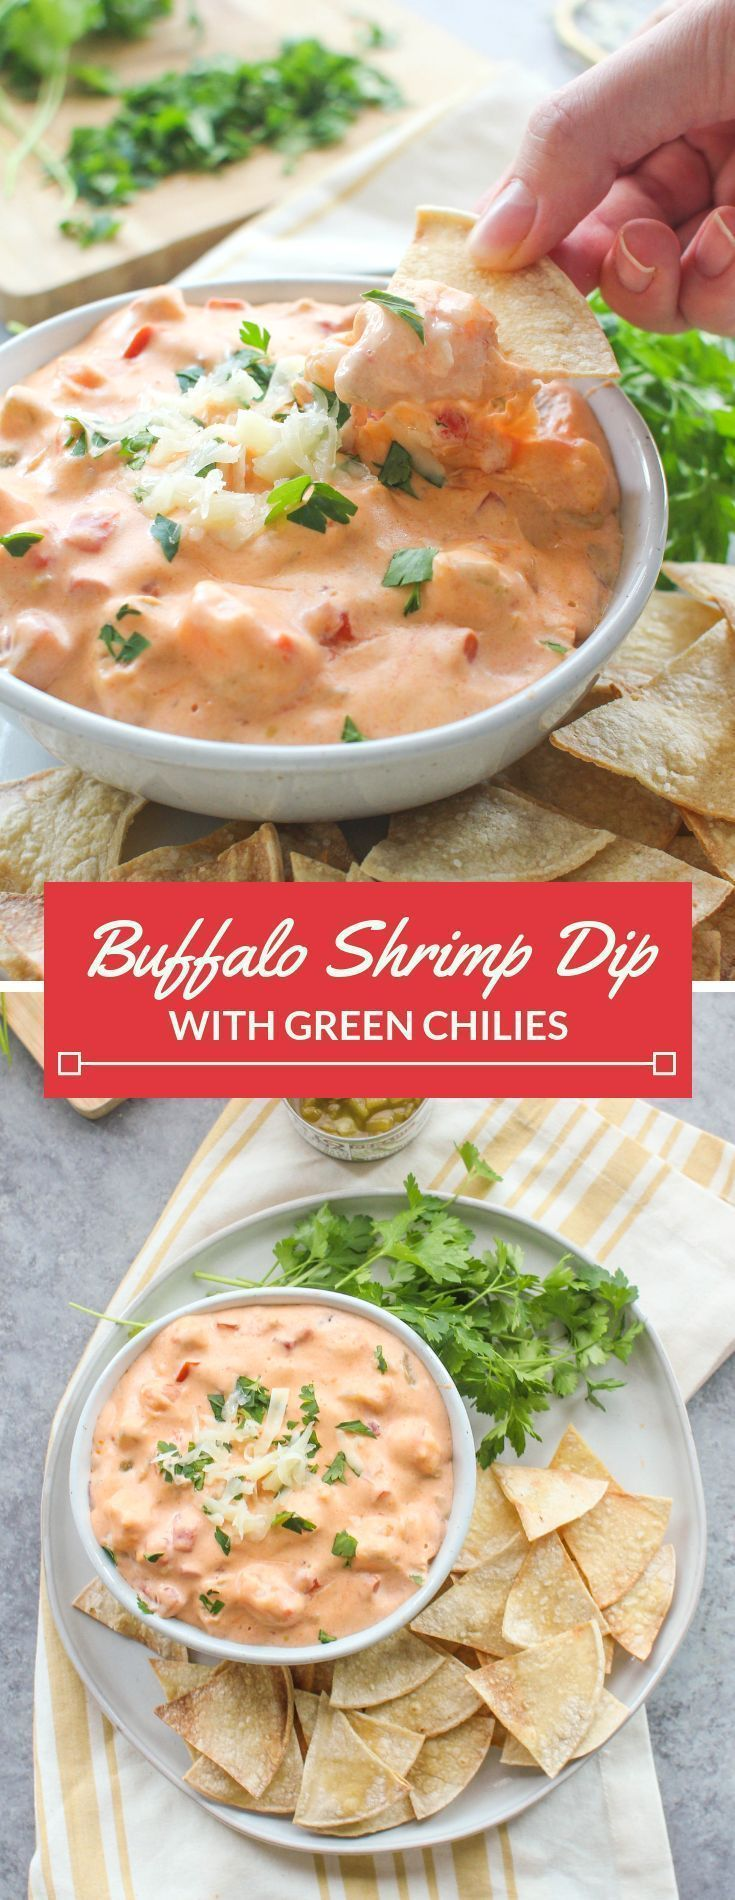 Grüner Chili Buffalo Shrimp Dip - #BUFFALO #Chili #Dip #grüner #Shrimp #buffaloshrimp Grüner Chili Buffalo Shrimp Dip - #BUFFALO #Chili #Dip #grüner #Shrimp #buffaloshrimp Grüner Chili Buffalo Shrimp Dip - #BUFFALO #Chili #Dip #grüner #Shrimp #buffaloshrimp Grüner Chili Buffalo Shrimp Dip - #BUFFALO #Chili #Dip #grüner #Shrimp #buffaloshrimp Grüner Chili Buffalo Shrimp Dip - #BUFFALO #Chili #Dip #grüner #Shrimp #buffaloshrimp Grüner Chili Buffalo Shrimp Dip - #BUFFALO #Chili #Dip #gr� #buffaloshrimp